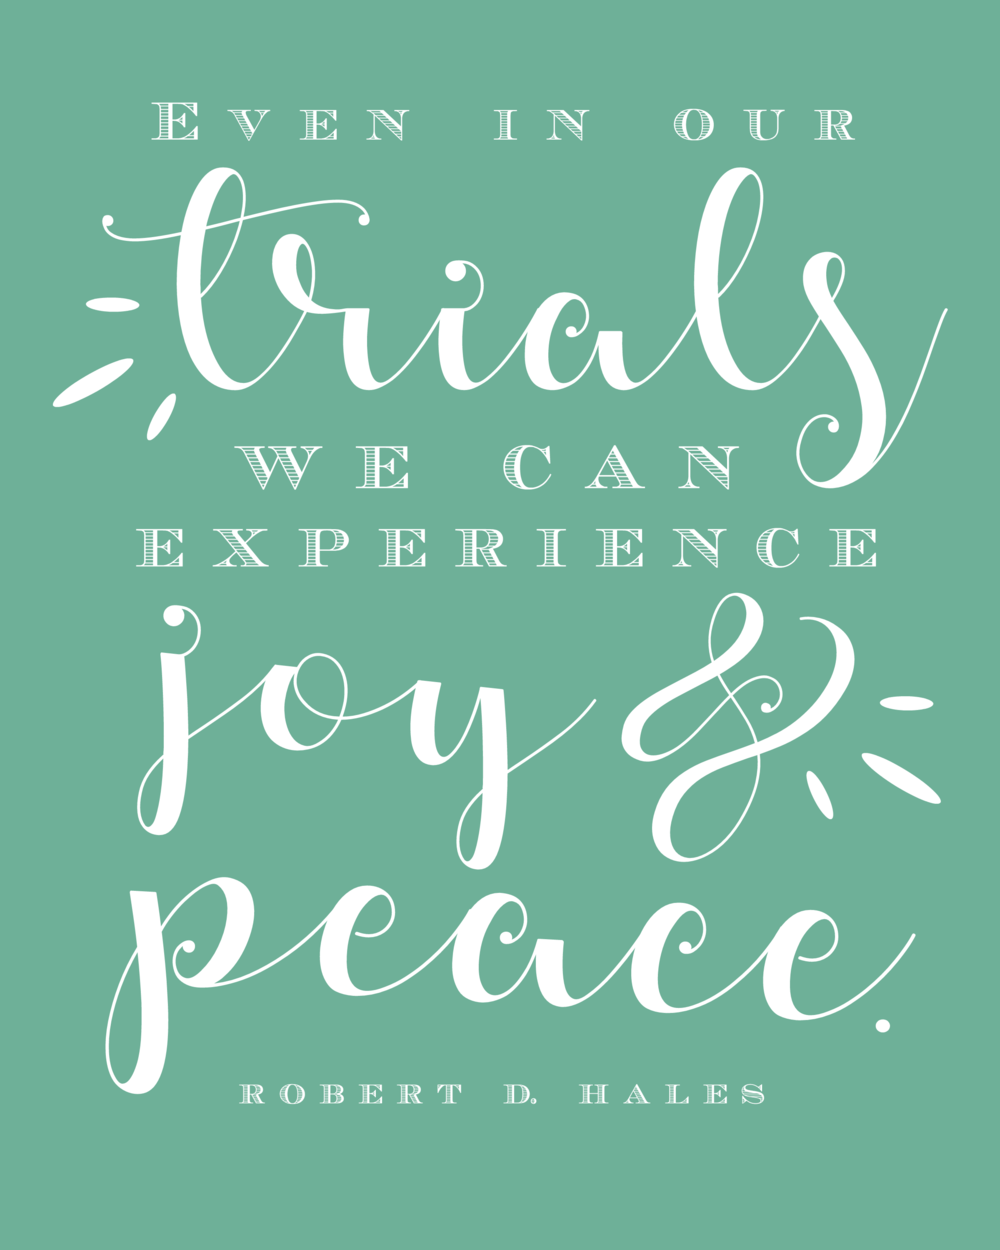 """Even in our trials we can experience joy and peace."" Robert D. Hales 